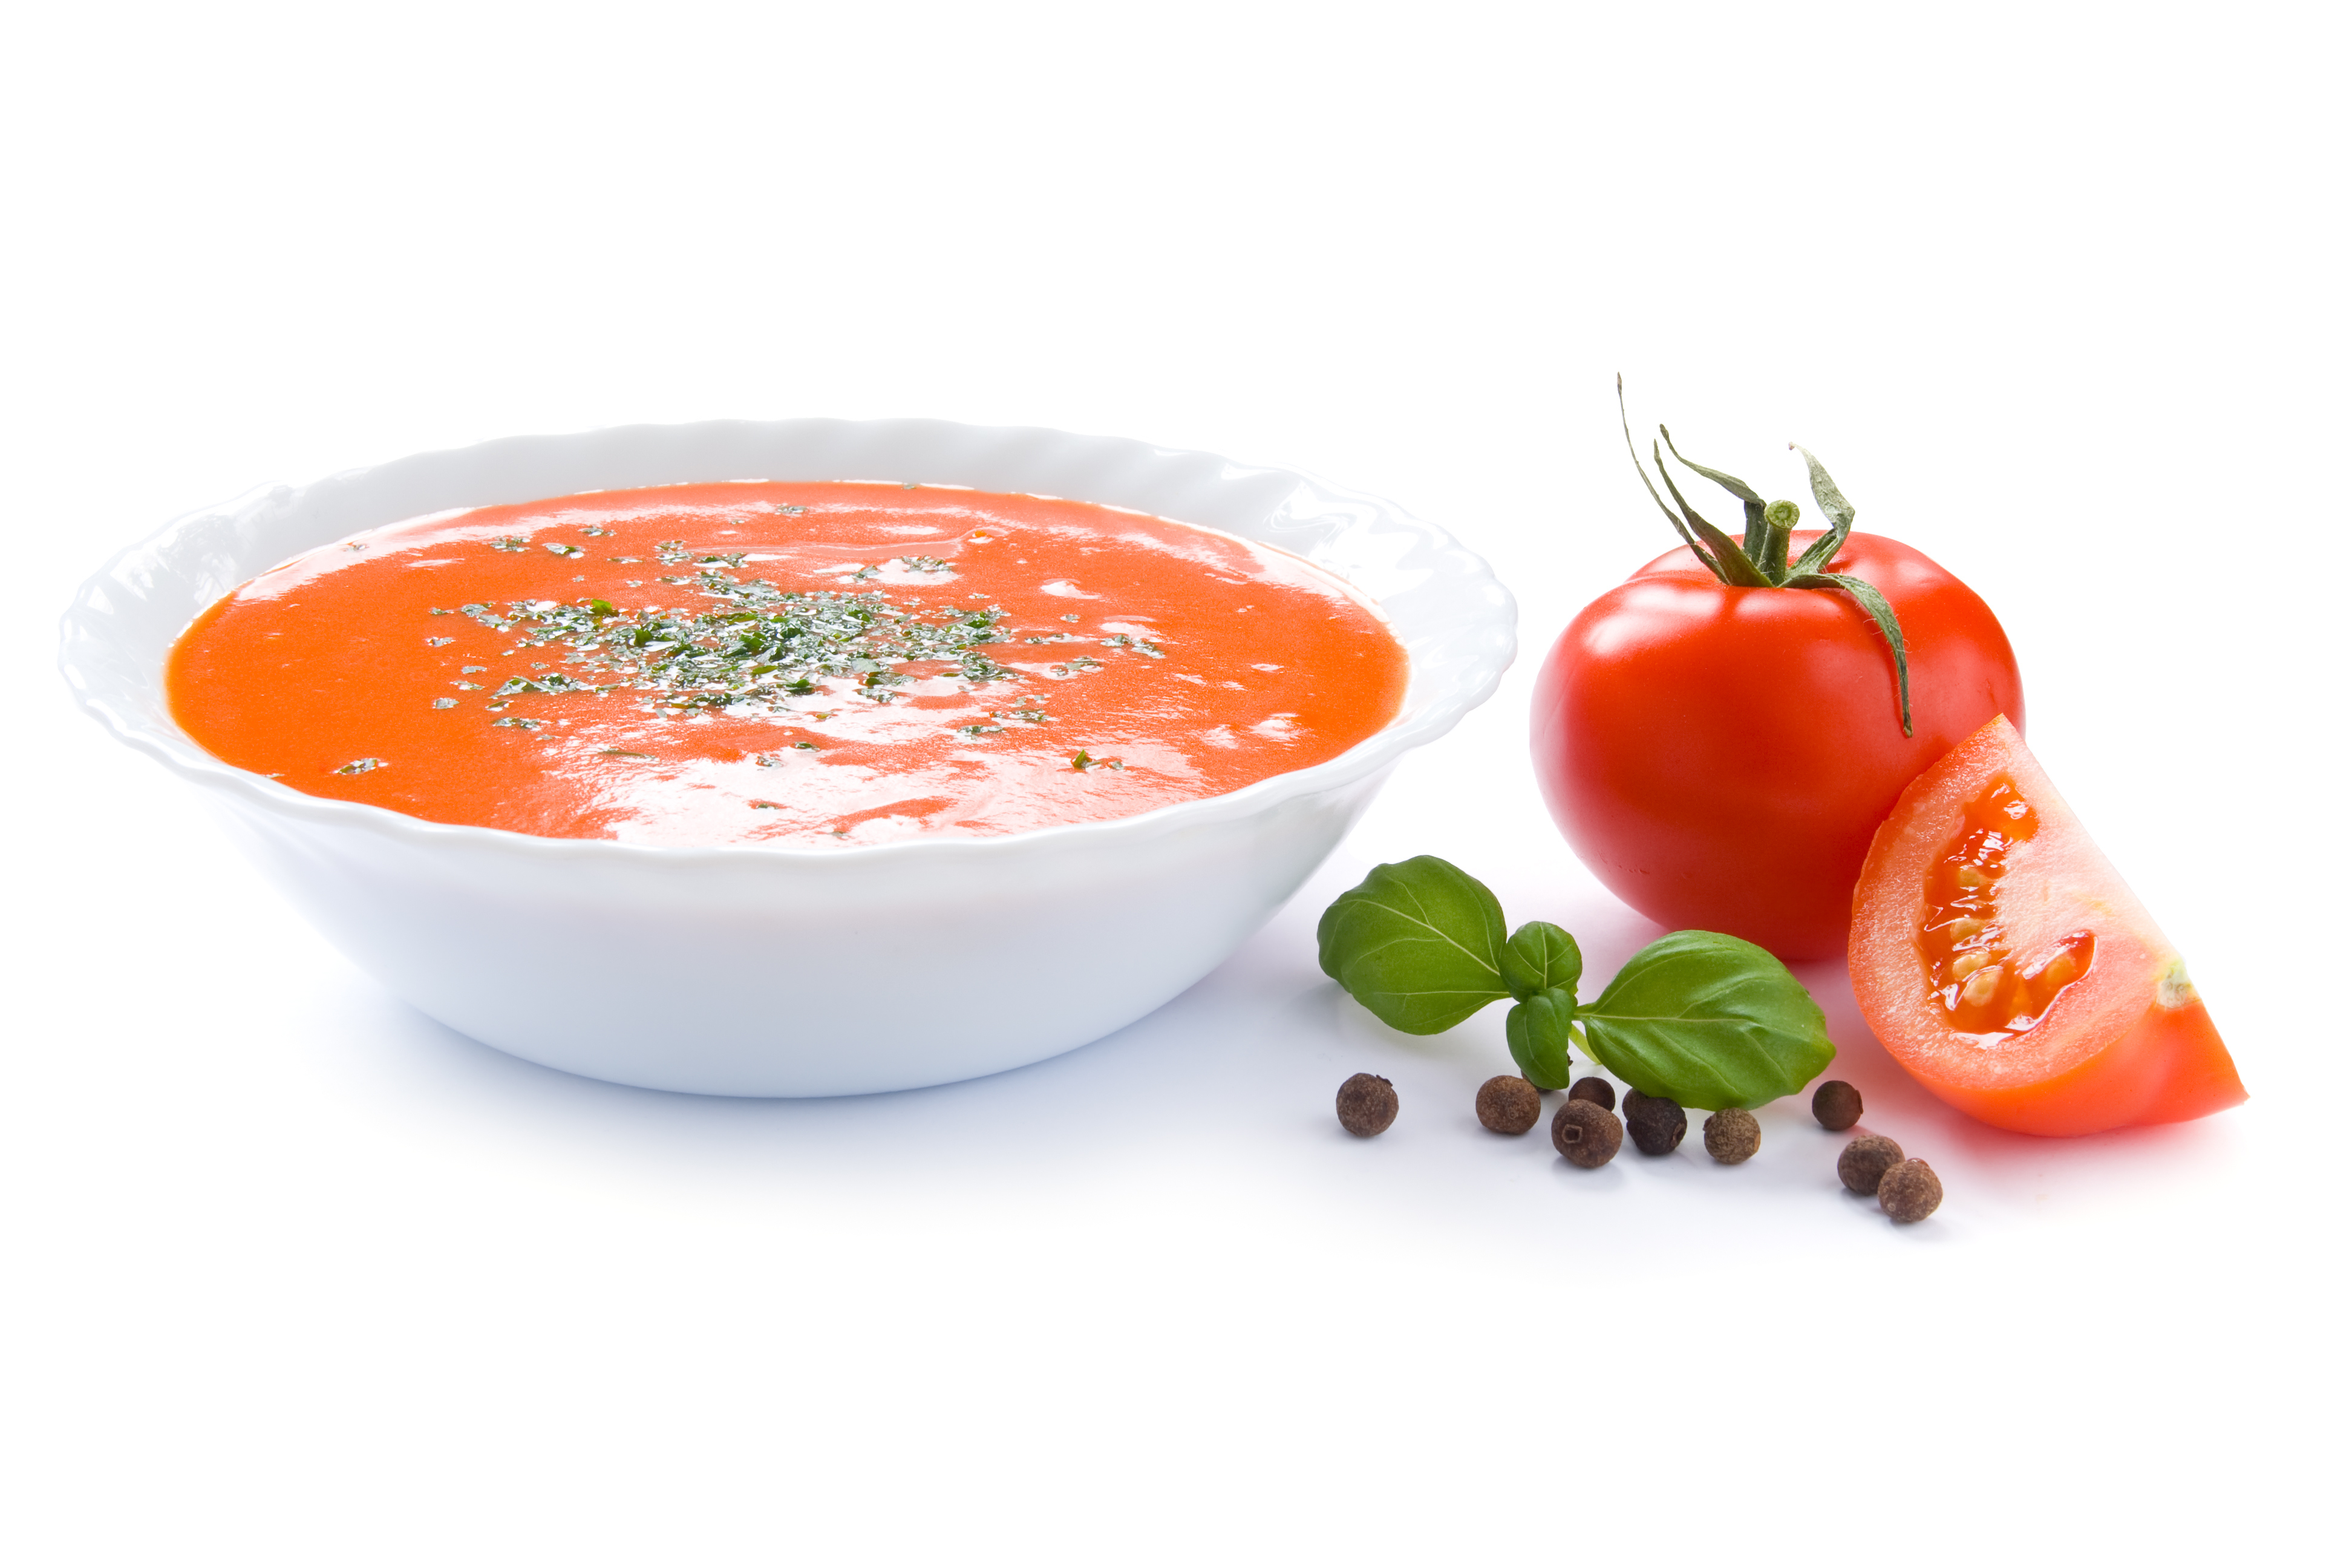 Tomato soup in a bowl isolated on a white background.